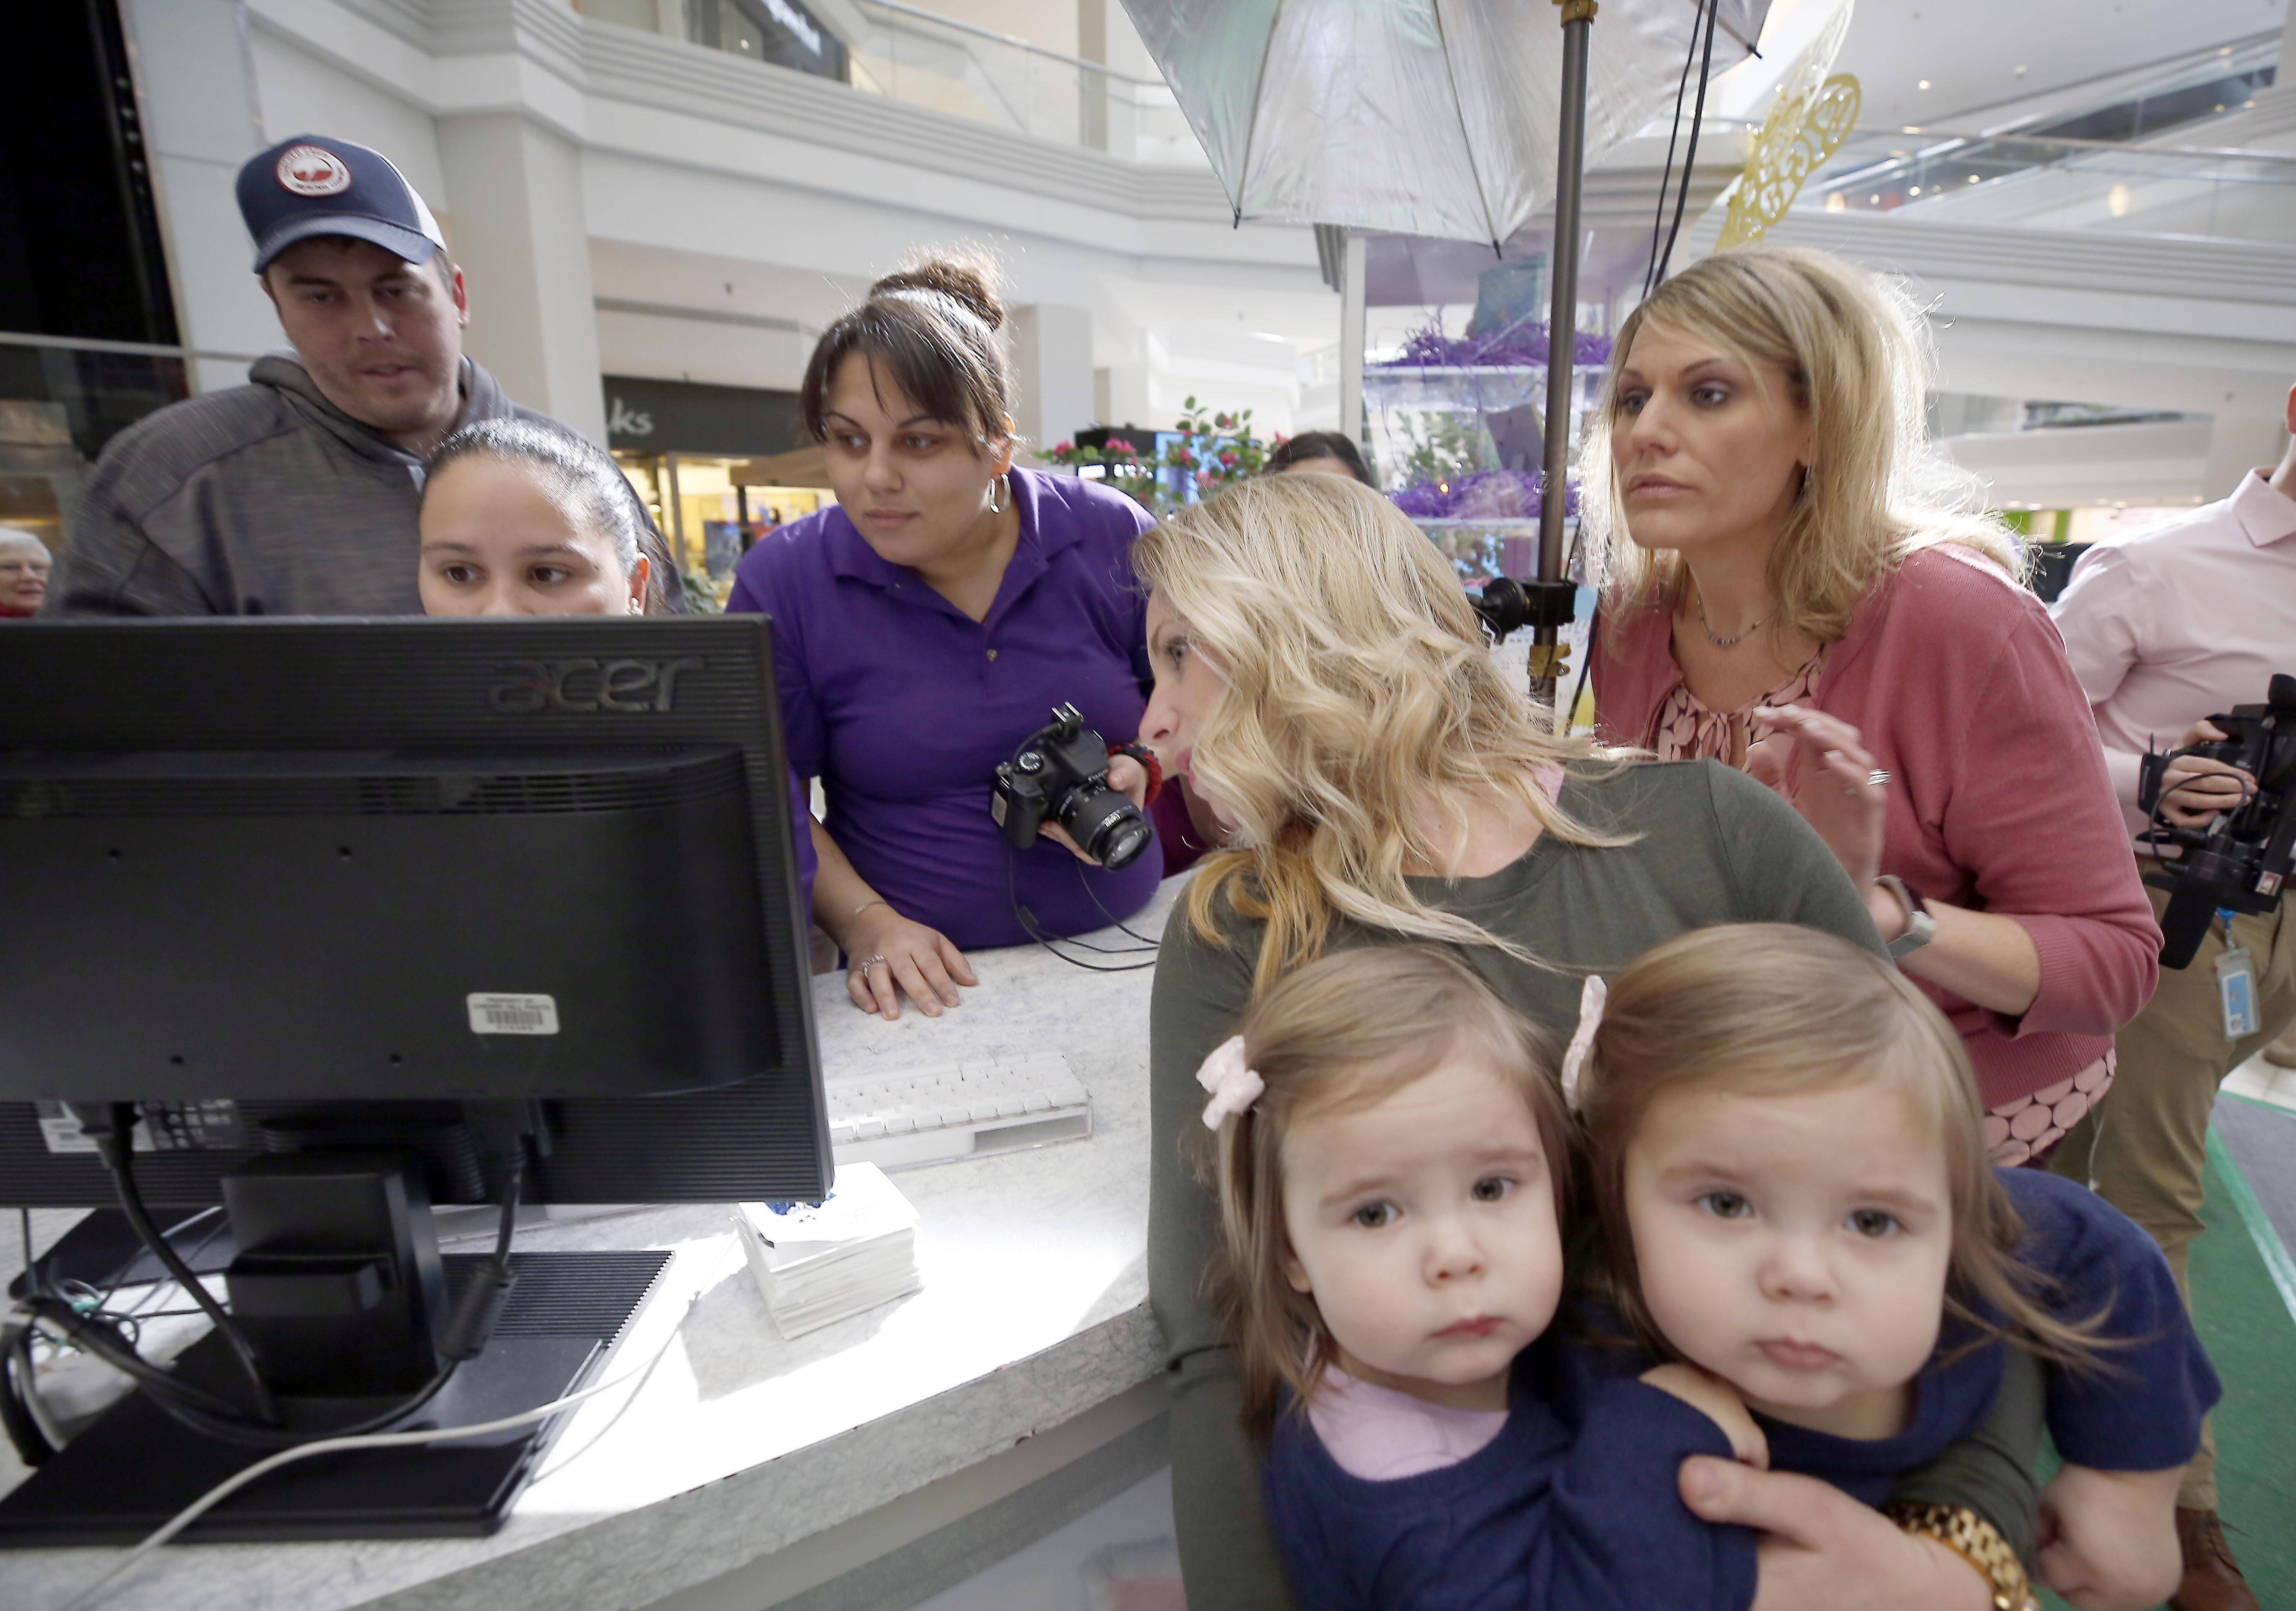 Miranda Marshall of Crystal Lake holds 18-month-old twins Ainsley and Emersyn while she looks at the group photo of 18 sets of twins, all under the age of 2, with the Easter Bunny Tuesday at Woodfield Mall in Schaumburg. District Manager of Cherry Hill Programs, Michele Colorato, is pictured far right, Manager Karina Zabeleta works the computer and Jeannette Gonzalez is holding the camera.